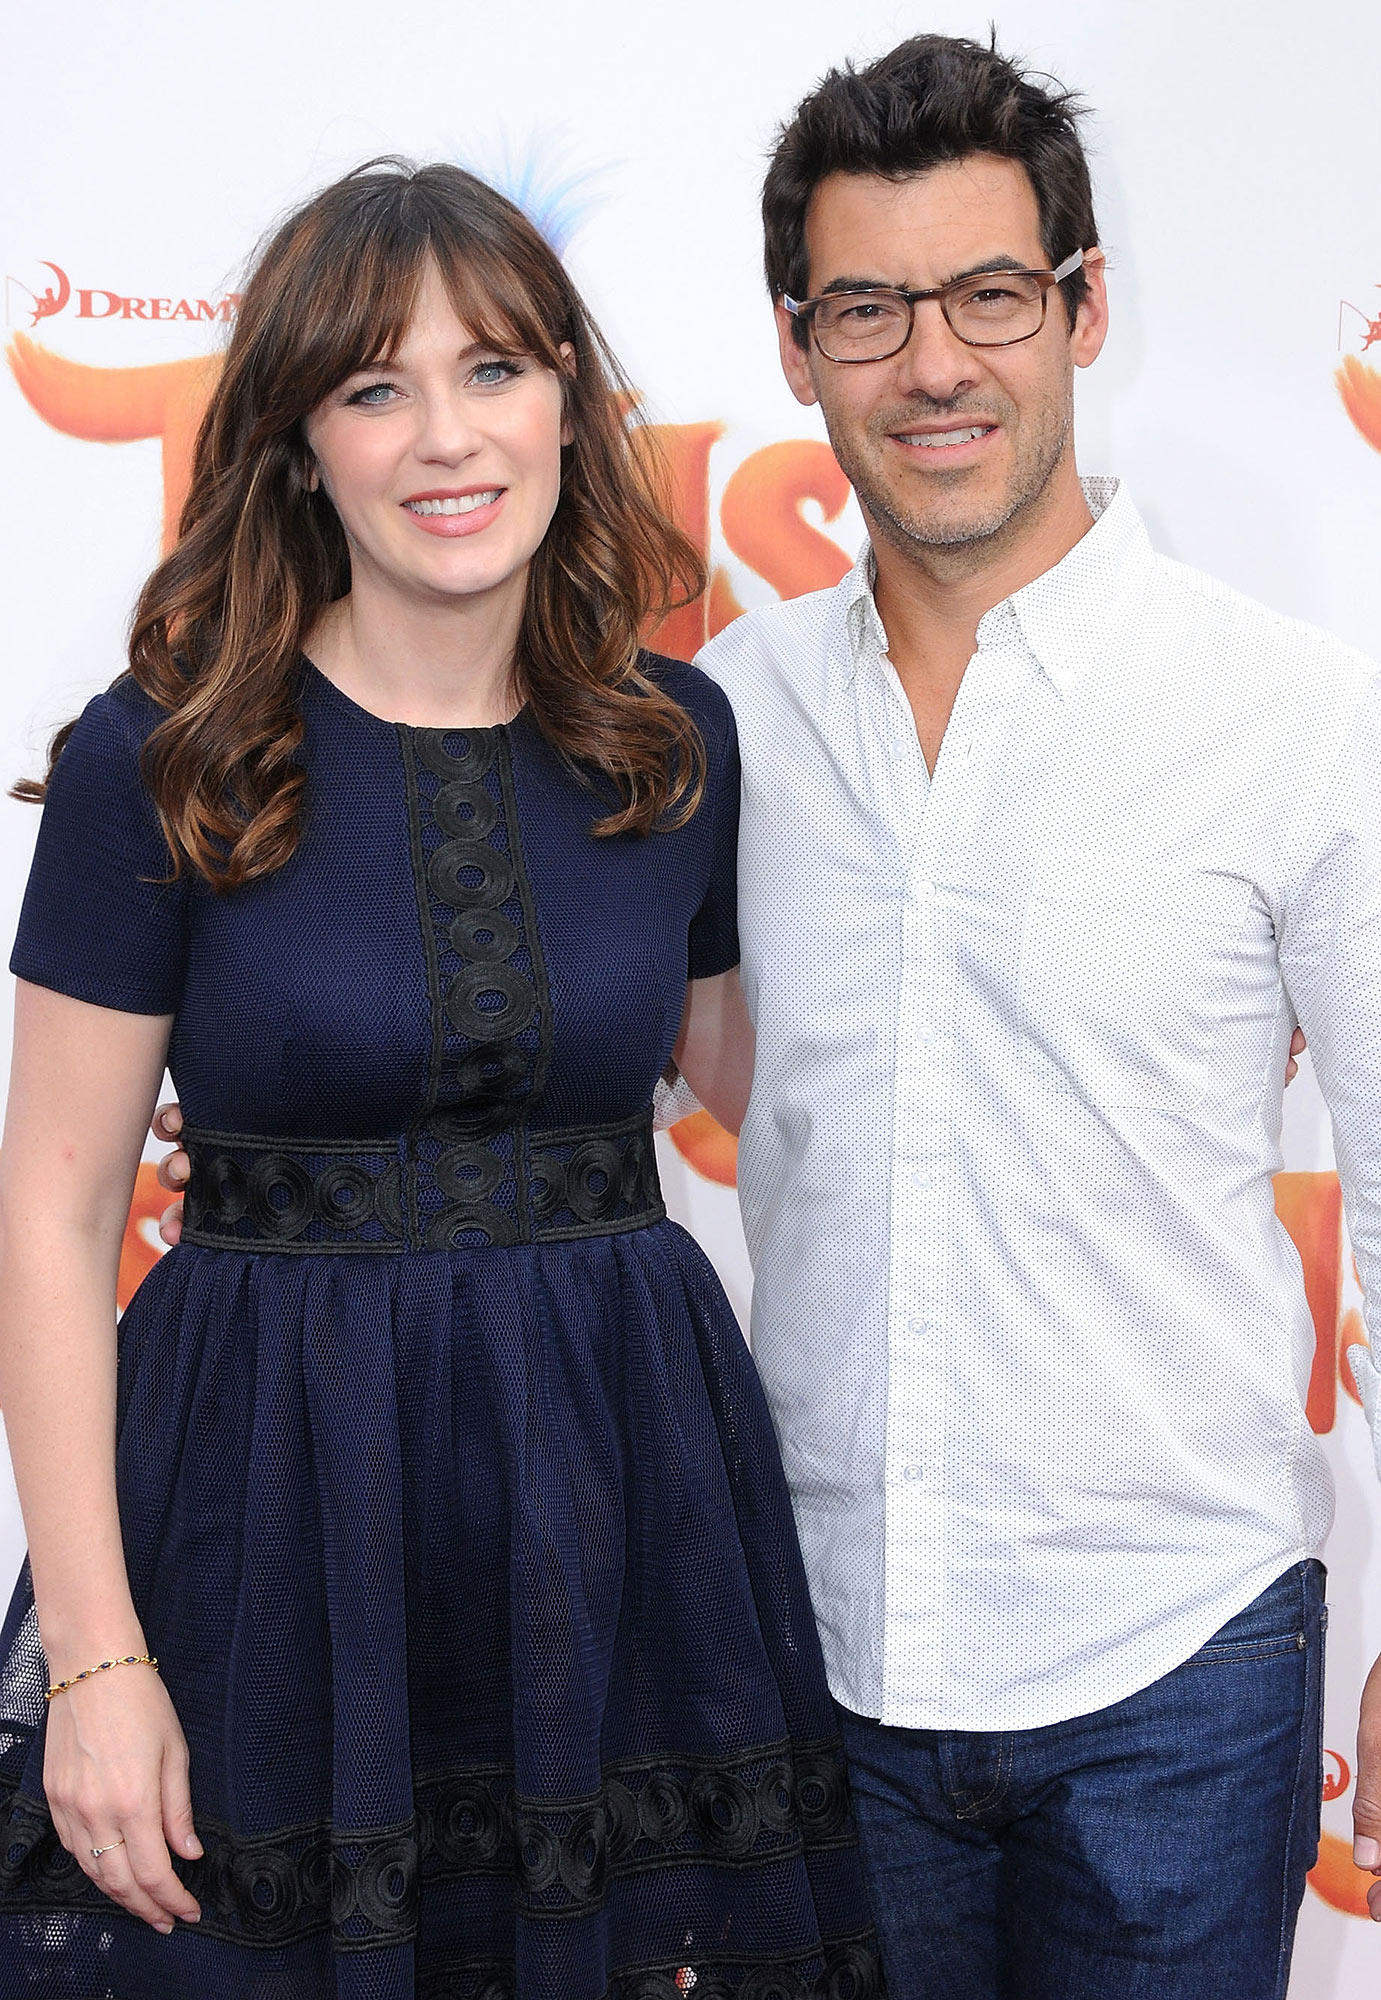 Zooey Deschanel Says Her Daughter Elsie 3 Frac12 Hates Jackets People Com